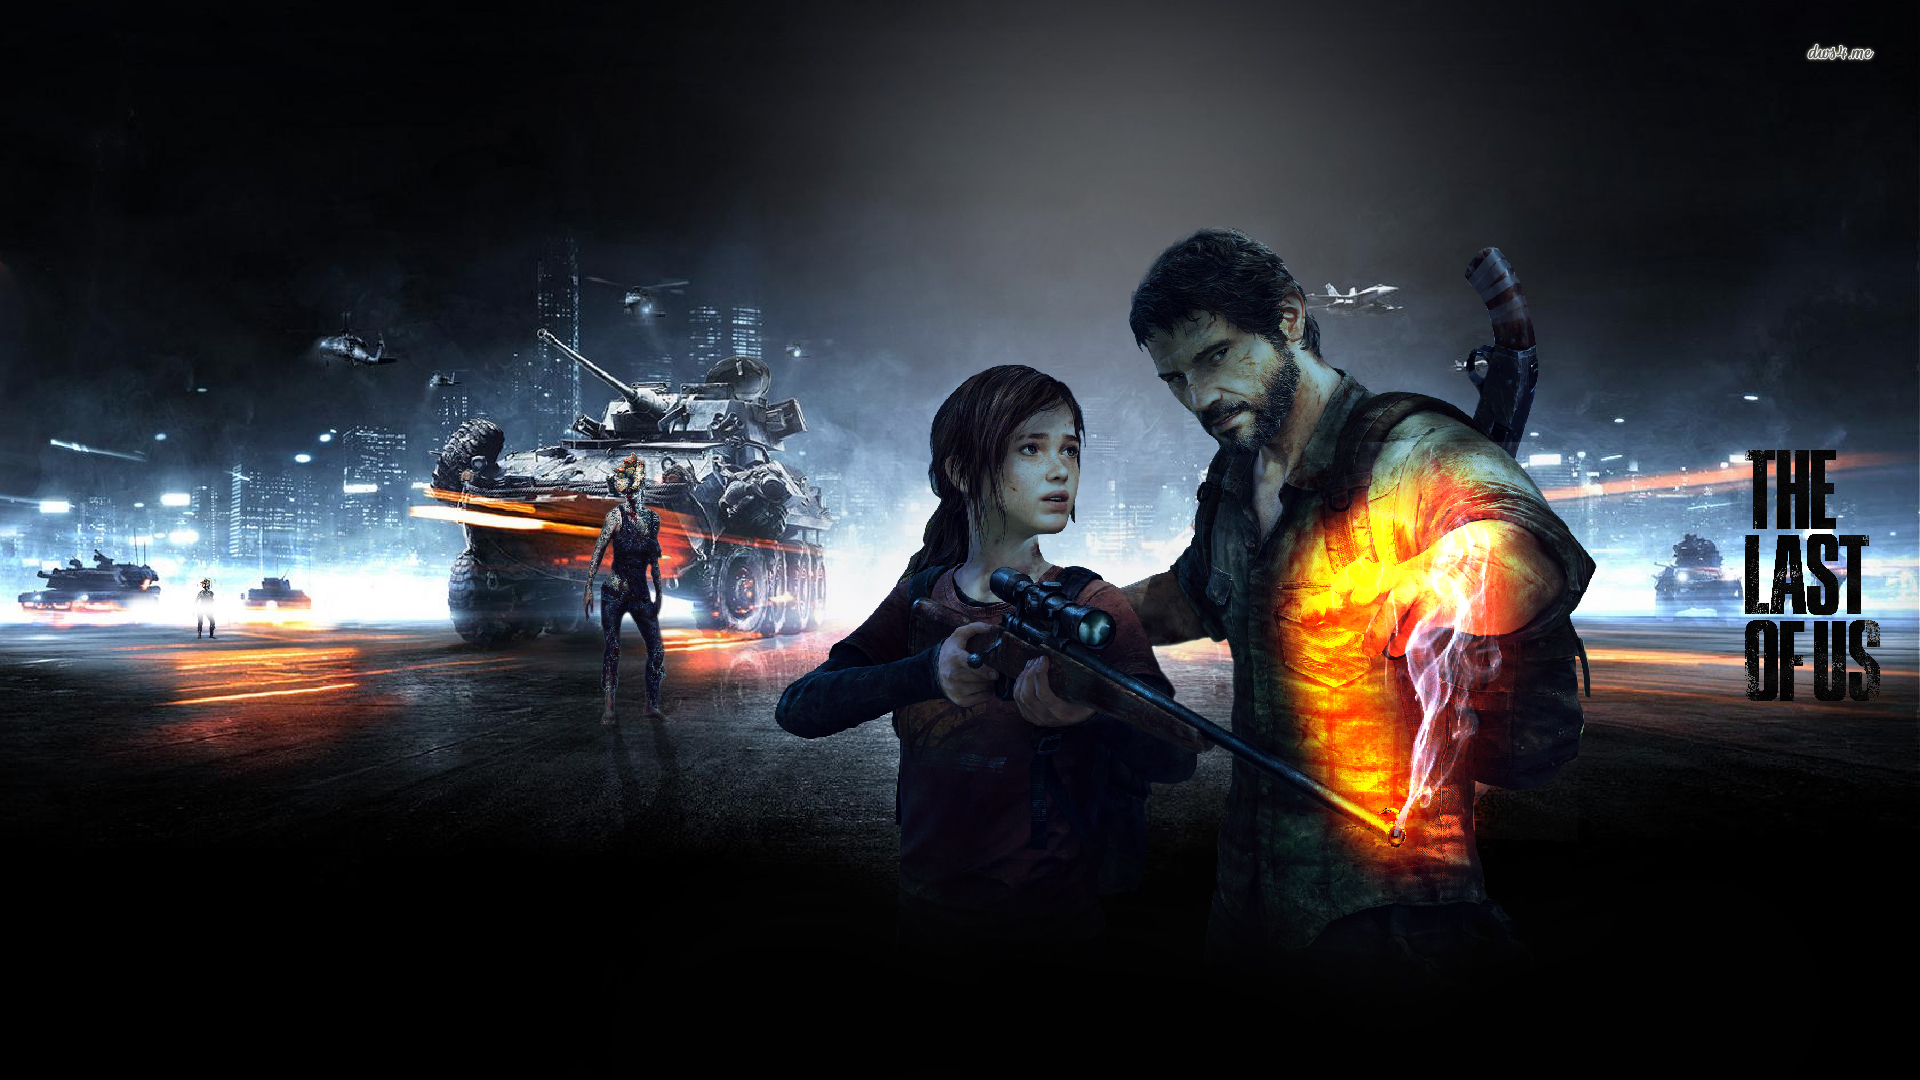 The Last Of Us Wallpaper - Battlefield 3 Wallpaper Hd , HD Wallpaper & Backgrounds